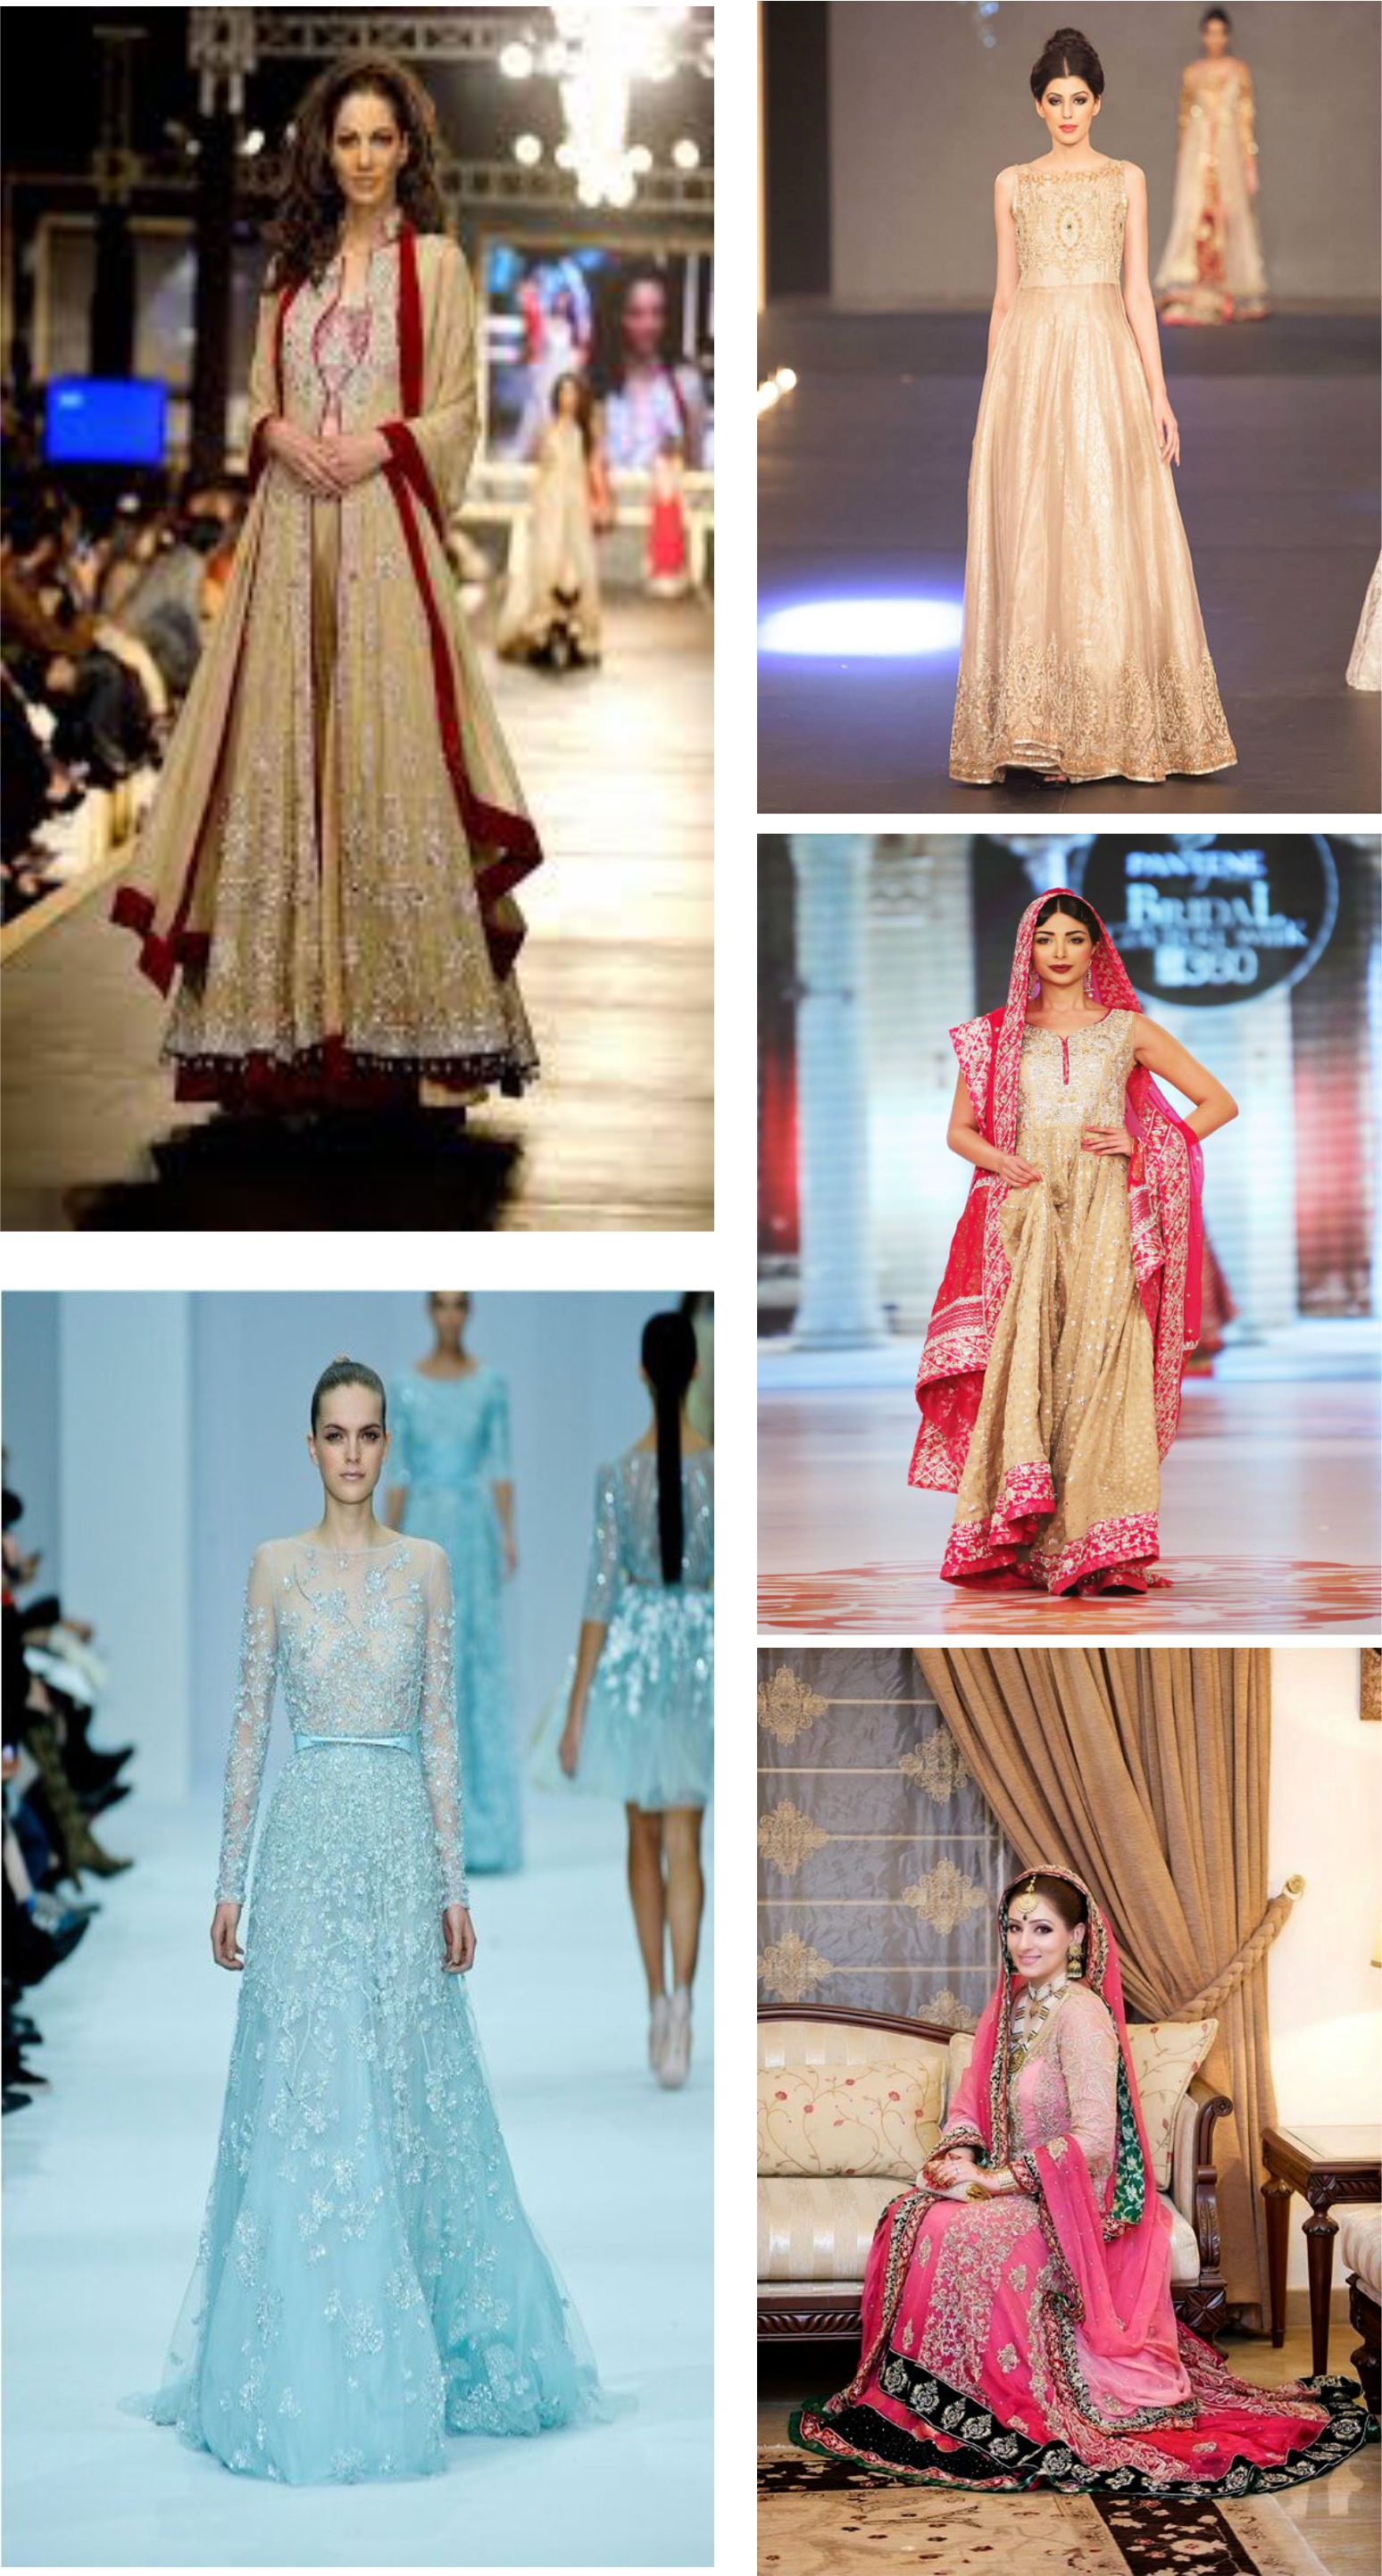 Comfortable Stylish Wedding Outfits Contemporary - Wedding Ideas ...